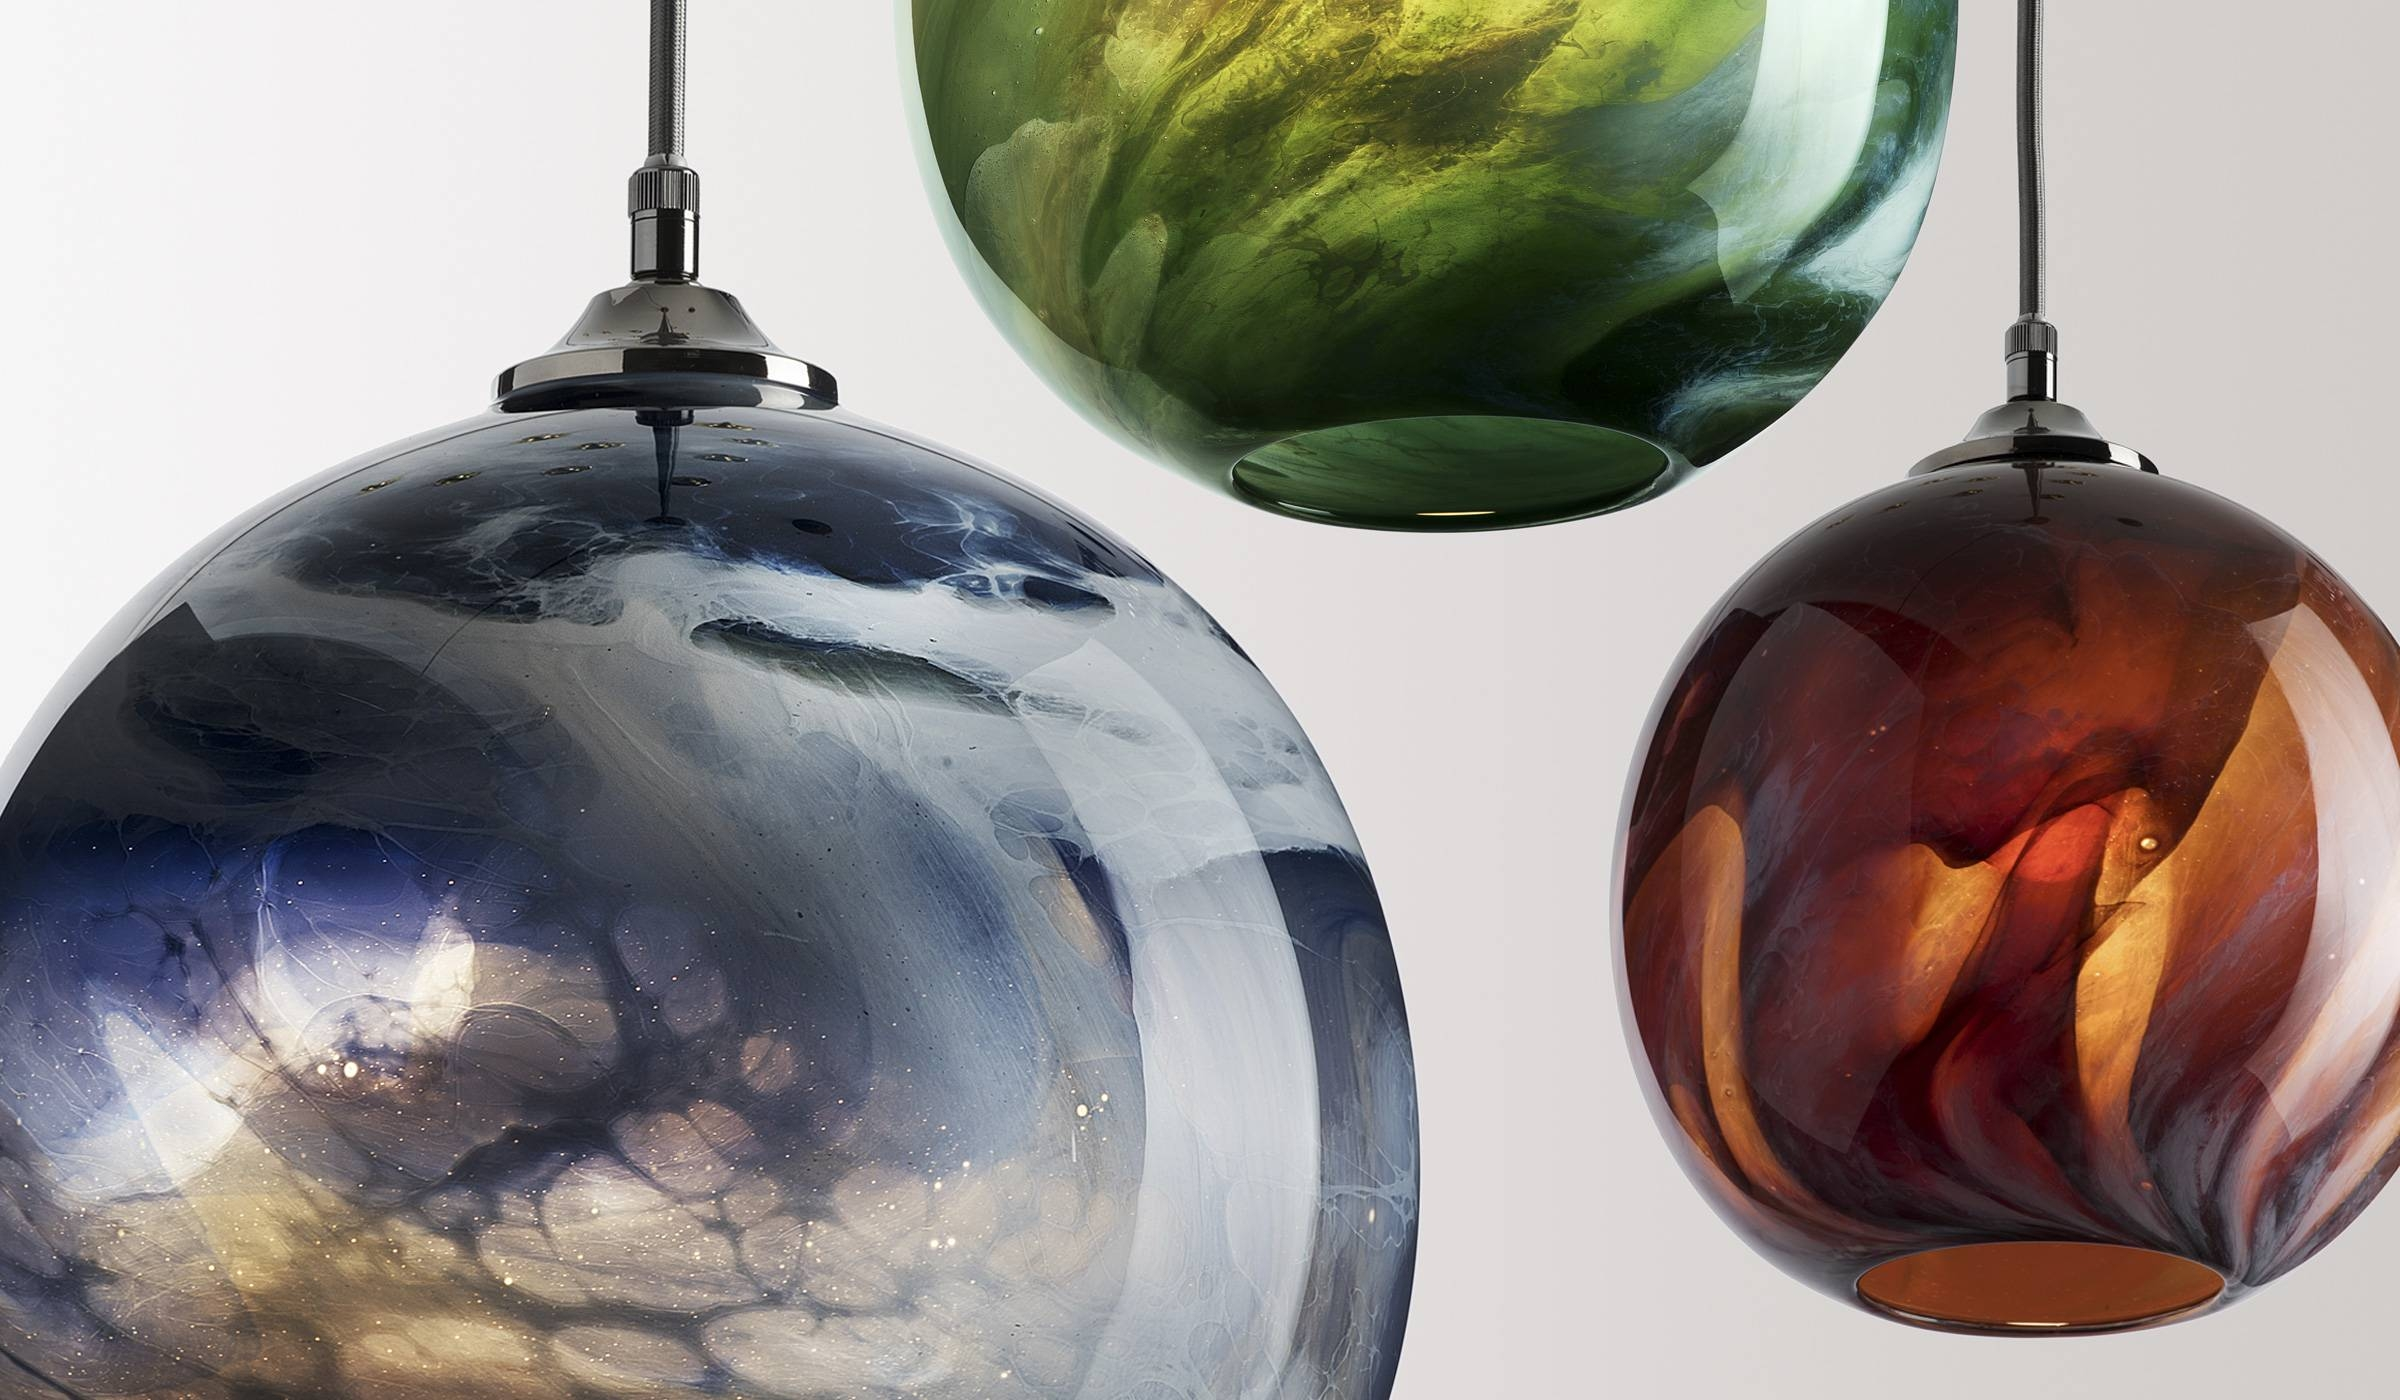 Glass Lighting - Rothschild & Bickers with Coloured Glass Pendant Lights (Image 8 of 15)